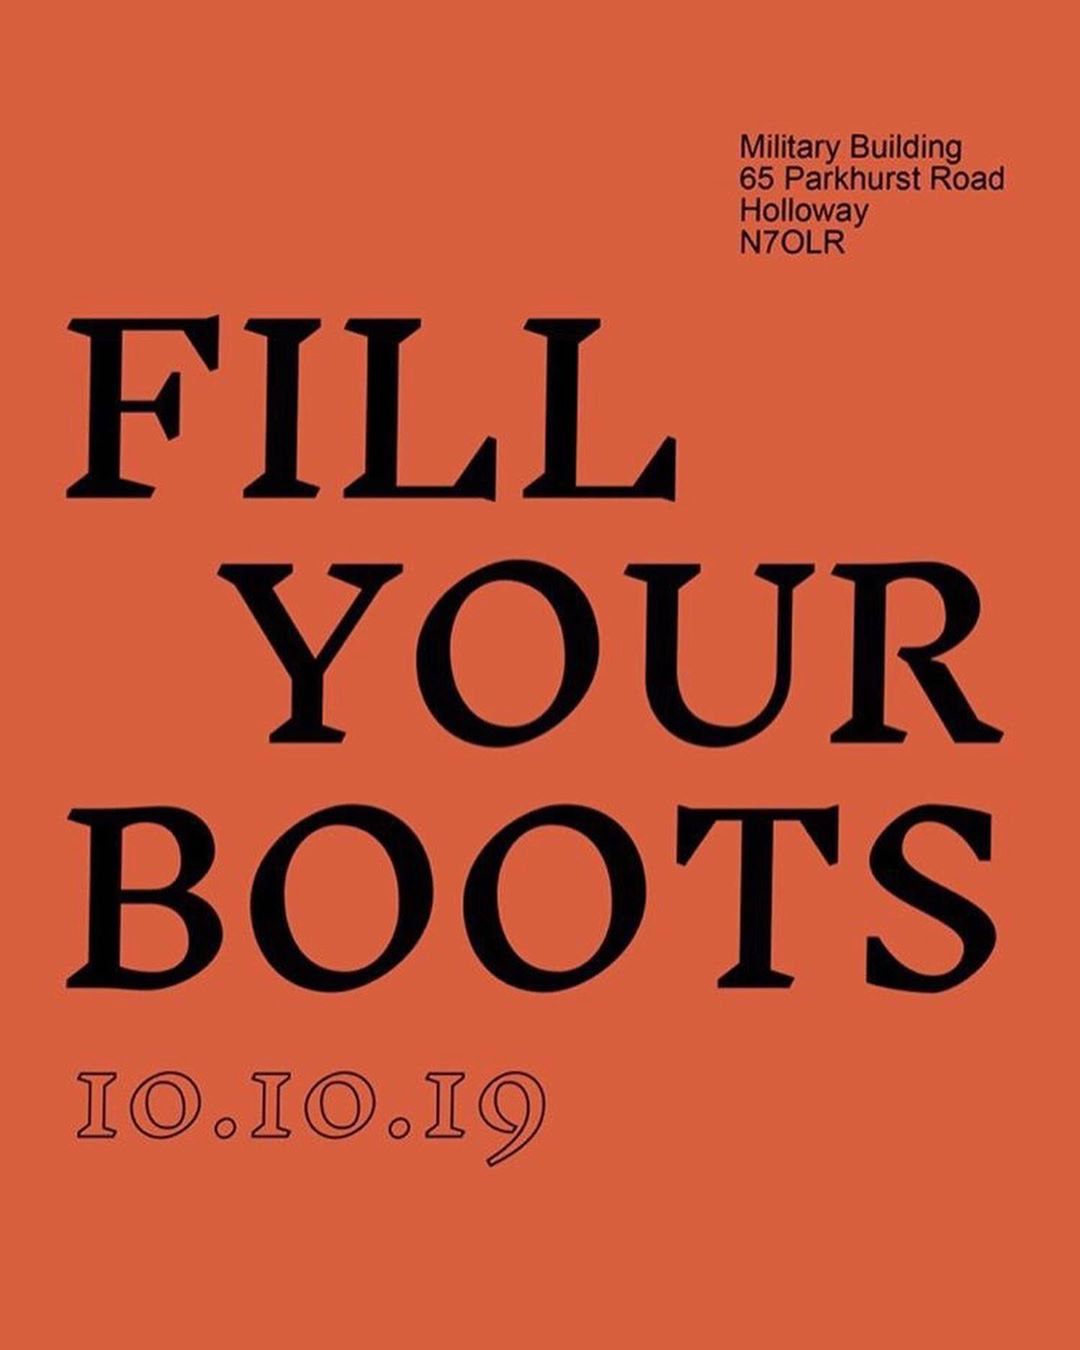 New work on display for 'Fill Your Boots' in Holloway tomorrow evening, 4 wan ni...